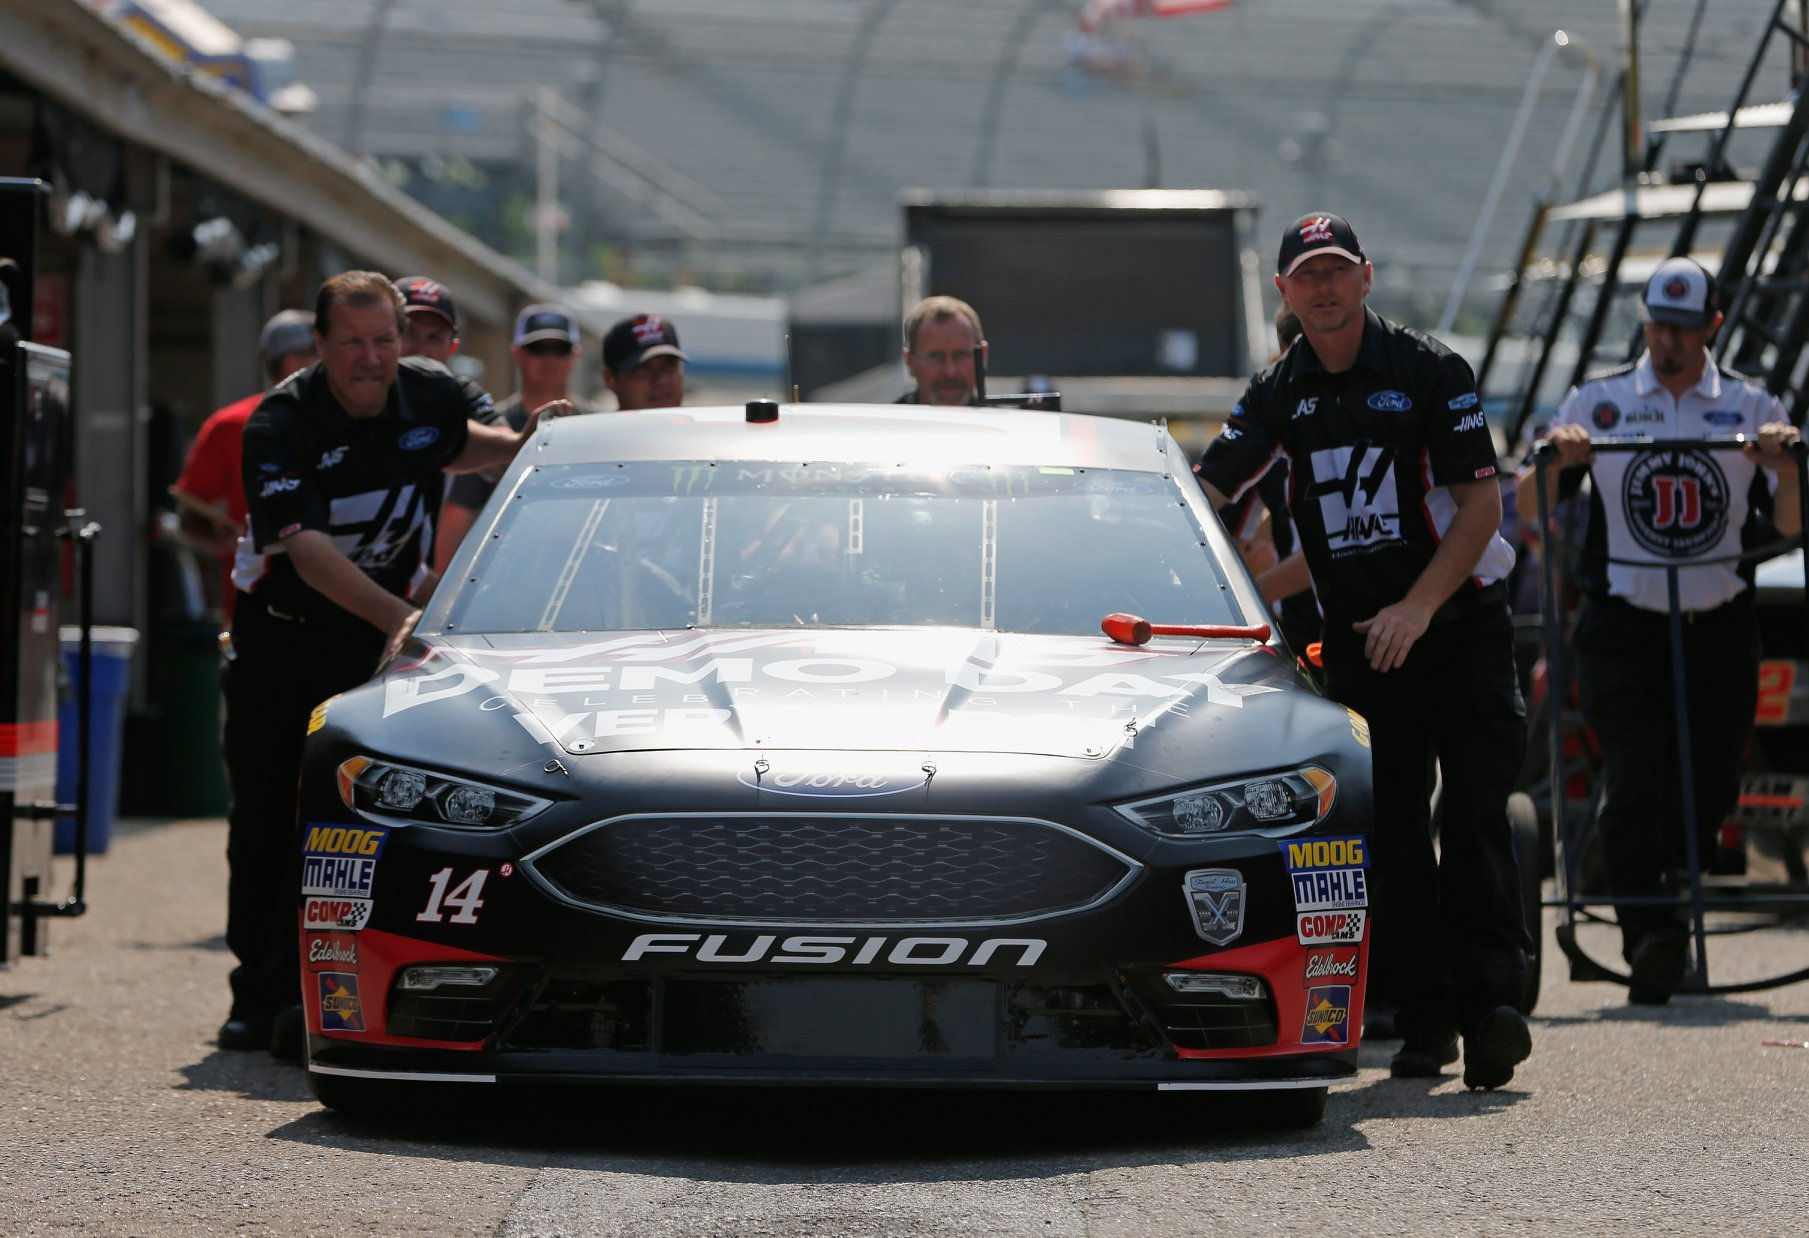 Clint Bowyer at Dover International Speedway - Stewart-Haas Racing